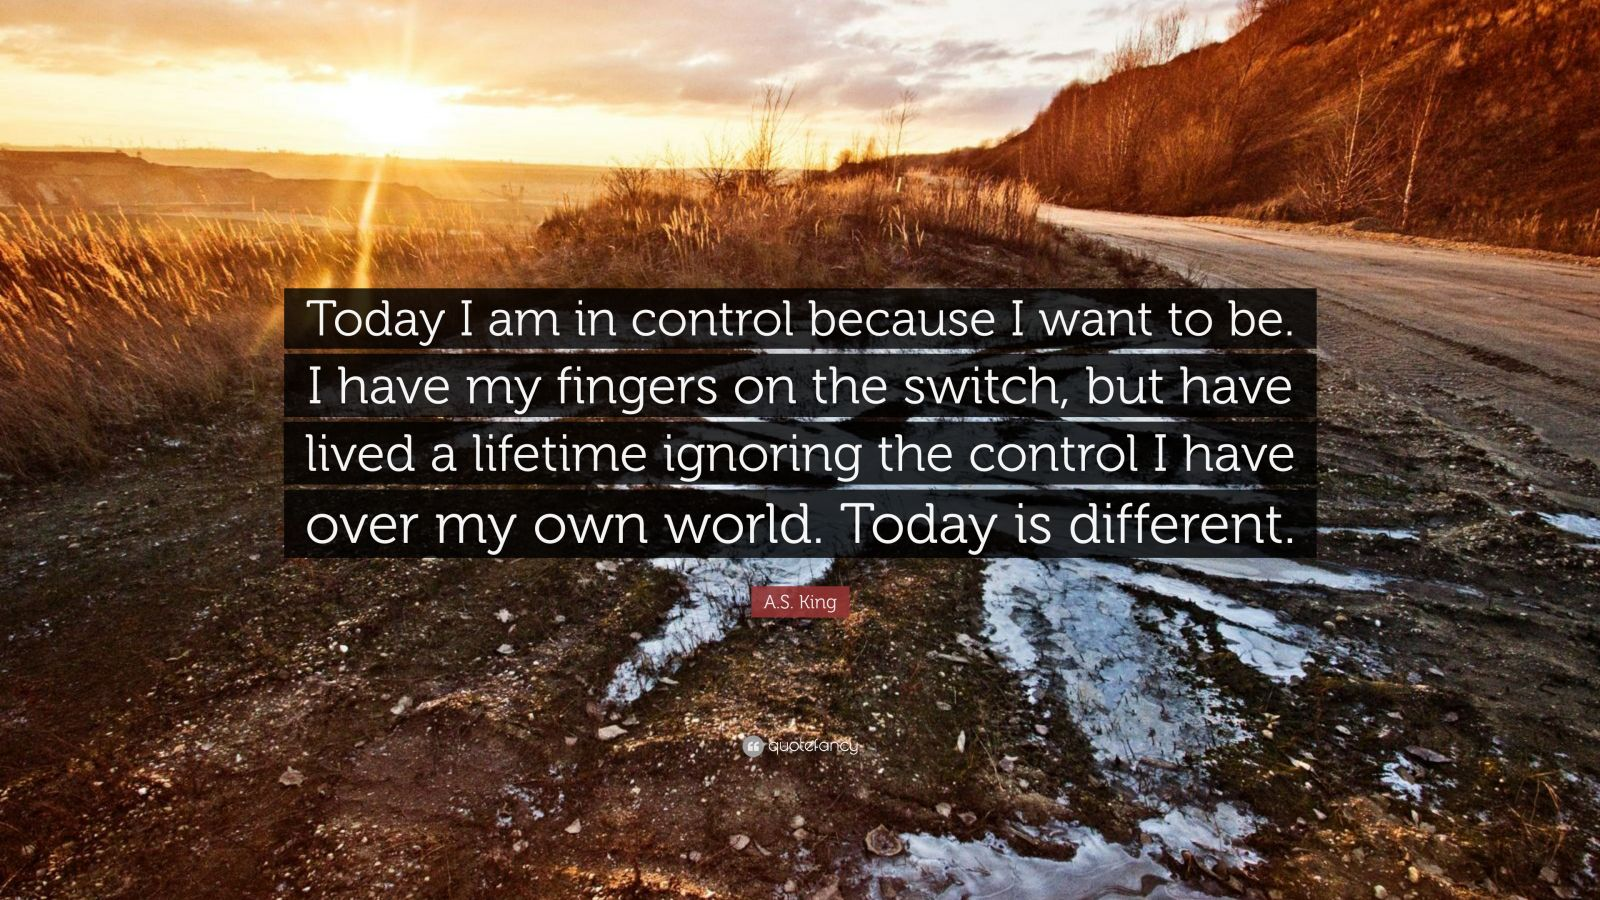 """A.S. King Quote: """"Today I am in control because I want to be. I have my fingers on the switch, but have lived a lifetime ignoring the control I have over my own world. Today is different."""""""